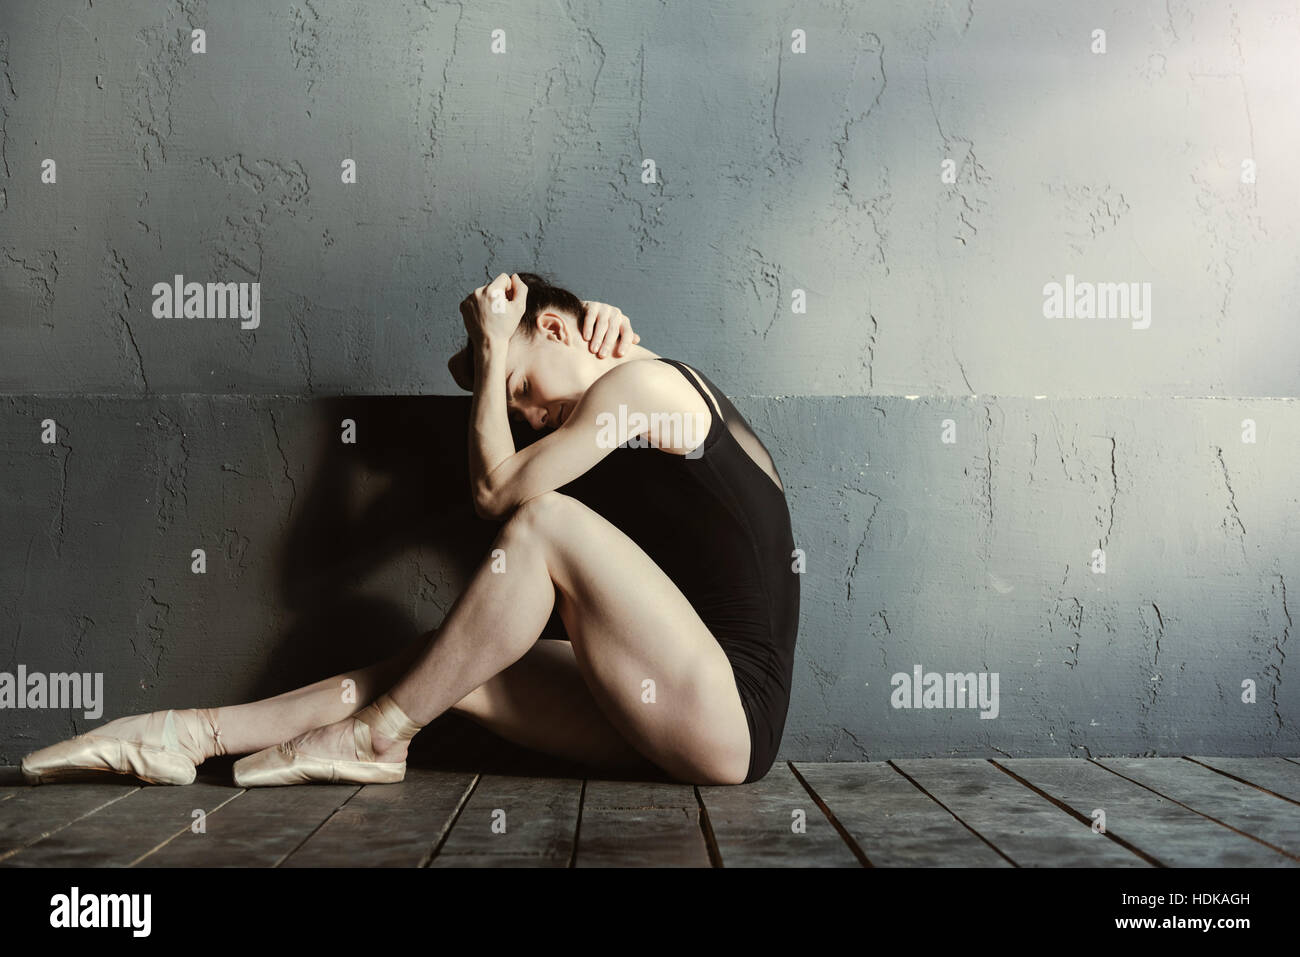 Exhausted ballet dancer crying in the dark lighted room - Stock Image